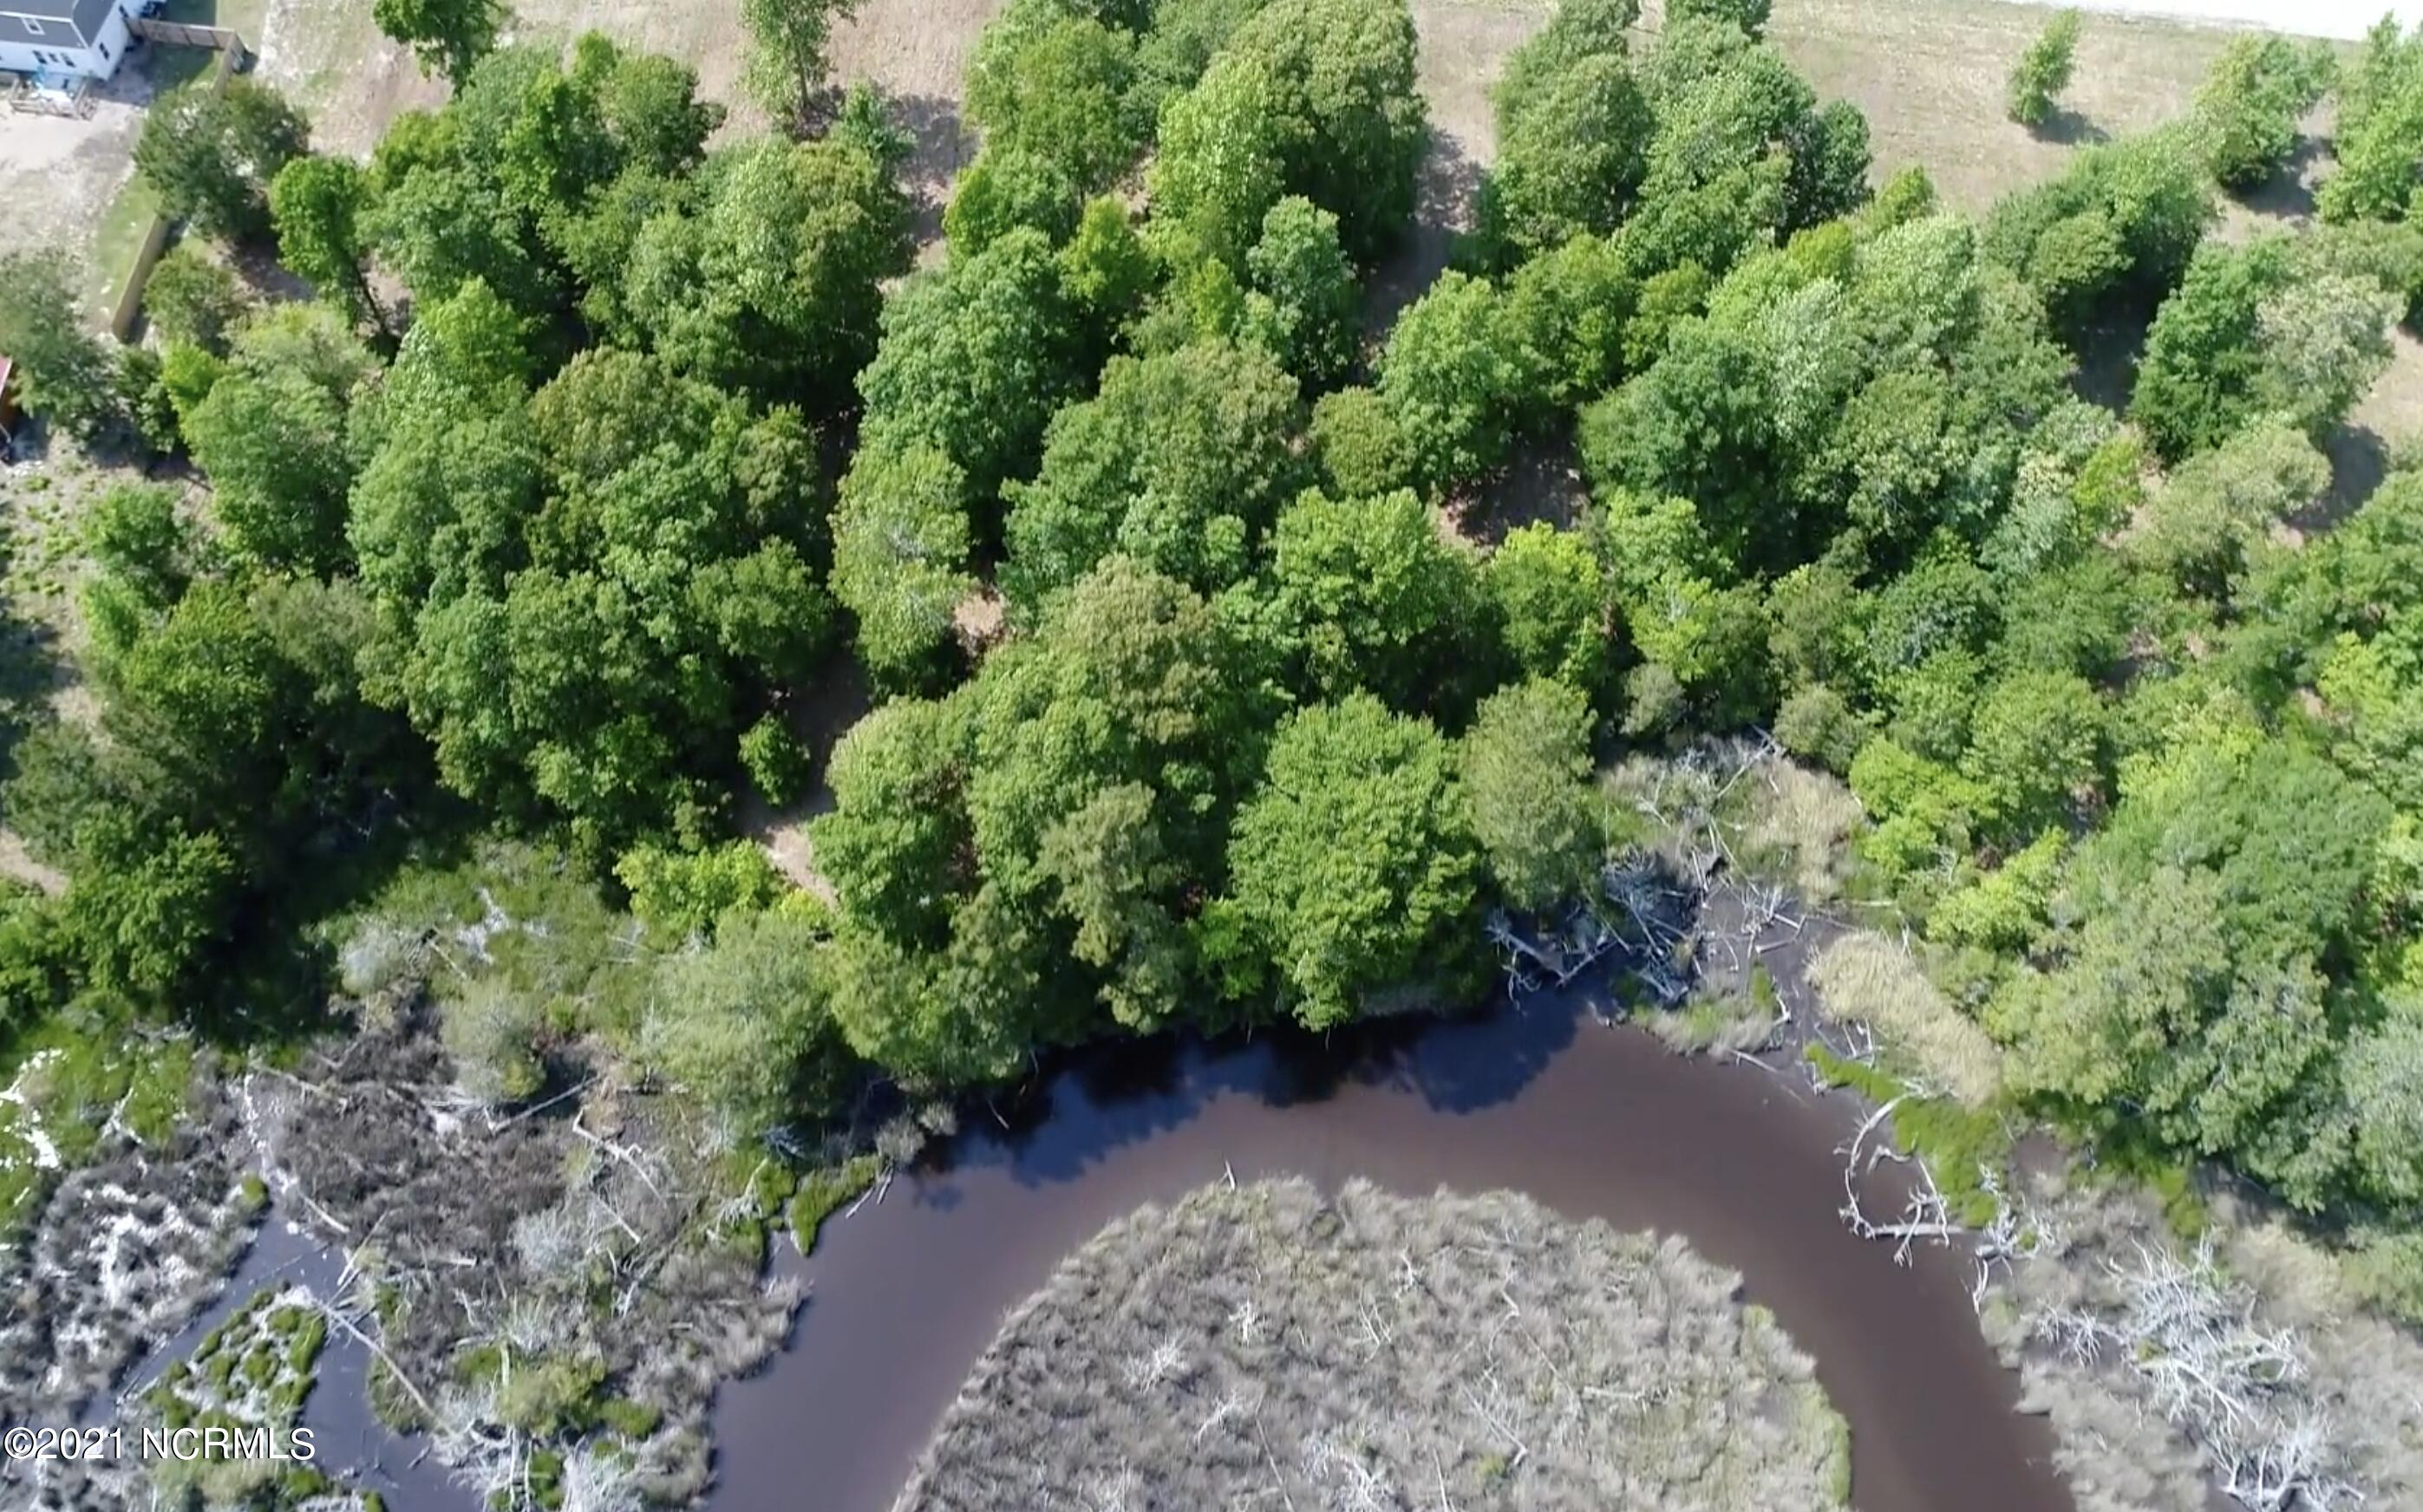 Beautiful and serene 2.27 acres with no restrictions and amazing waterfront views. Minutes to Camp Lejeune and local beaches, this lot is the perfect spot to build the home you've been dreaming of. Water depth will suit a skiff.  No HOA and no restrictions. Also offered with 260 Everett Yopp Drive for a total of more than 4.5 acres for your own private estate. Lot is also subdividable for two homesites.  Be sure to view the aerial video tour.